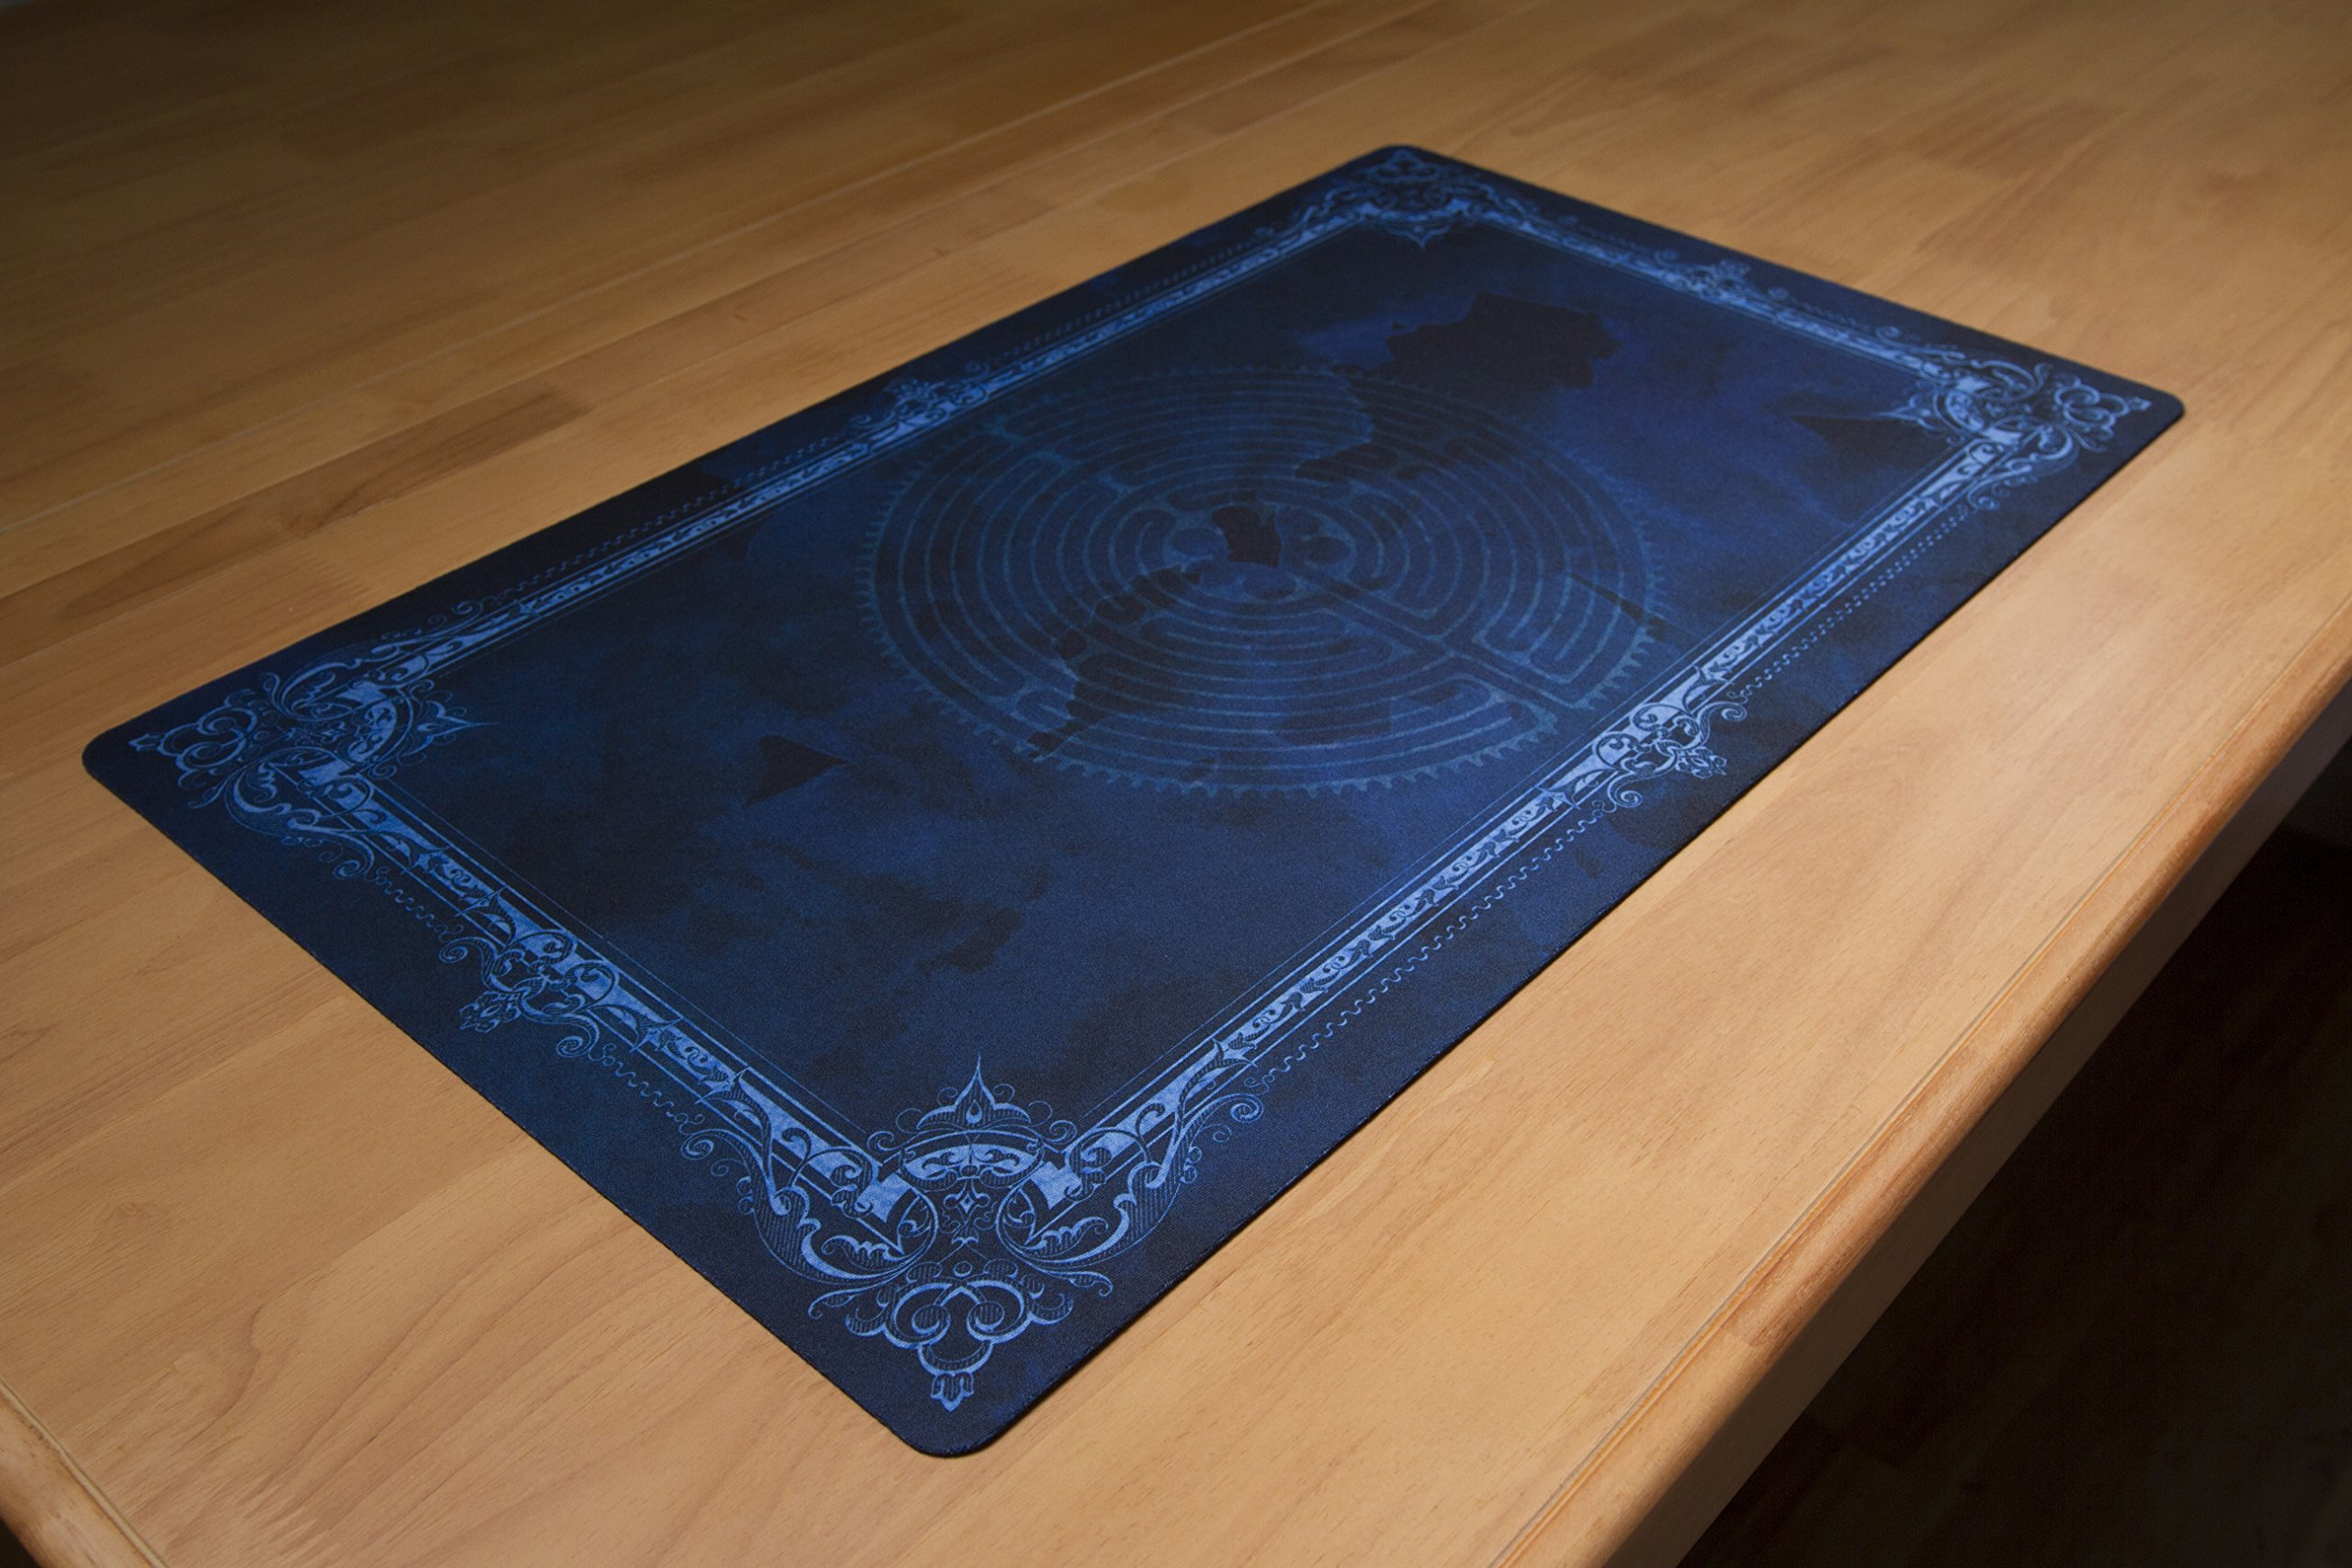 Inked Playmats Labryinth Morgan Playmat Inked Gaming Perfect for Card Gaming TCG Game Mat by Inked Playmats (Image #8)